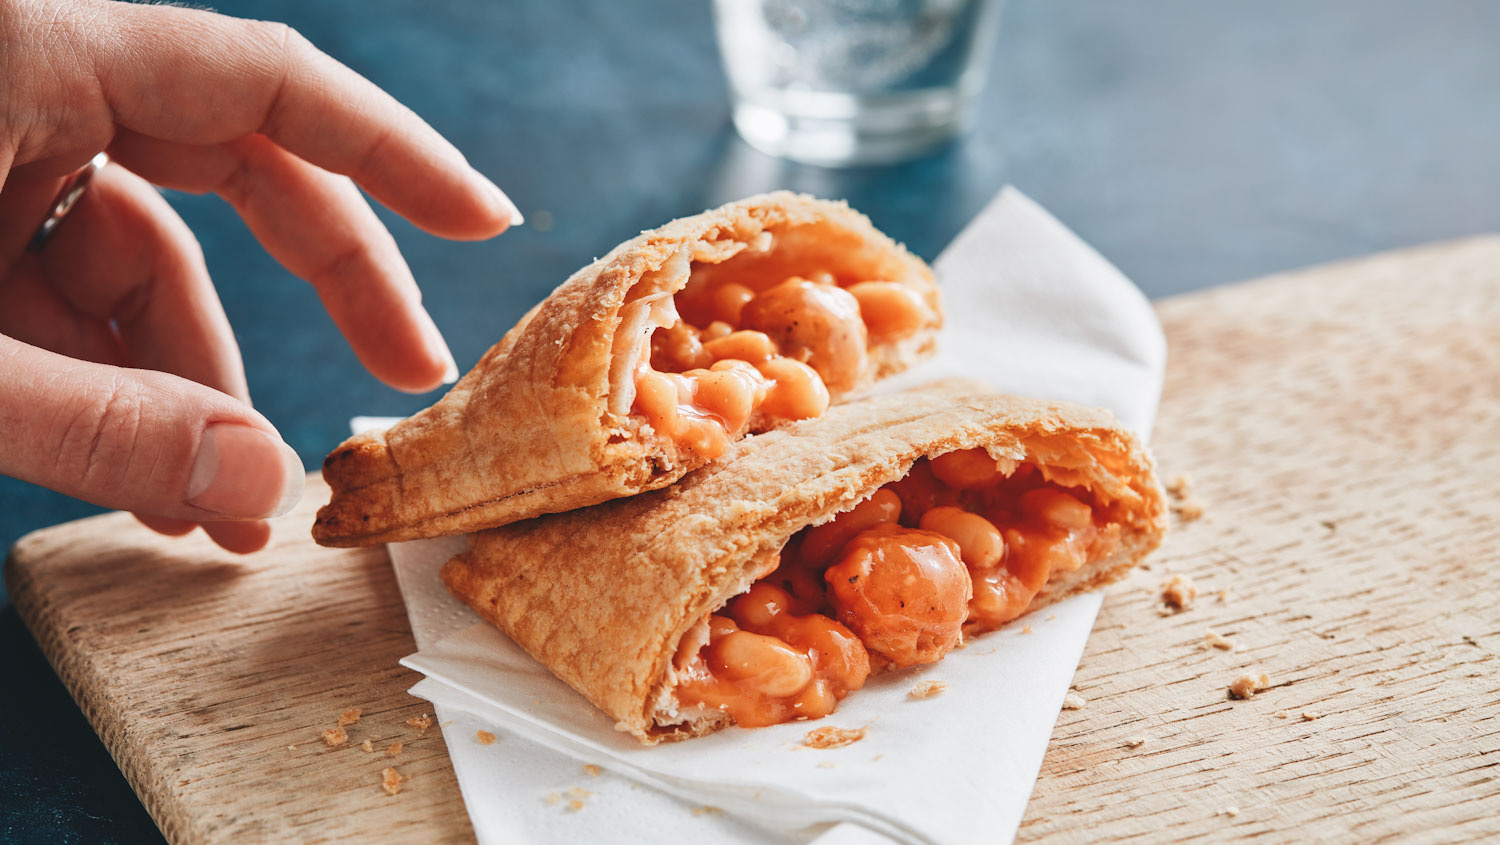 Photo of someone reaching their hand towards Greggs' new vegan Sausage, Bean, and Cheese Melt, cut in half to expose the filling.